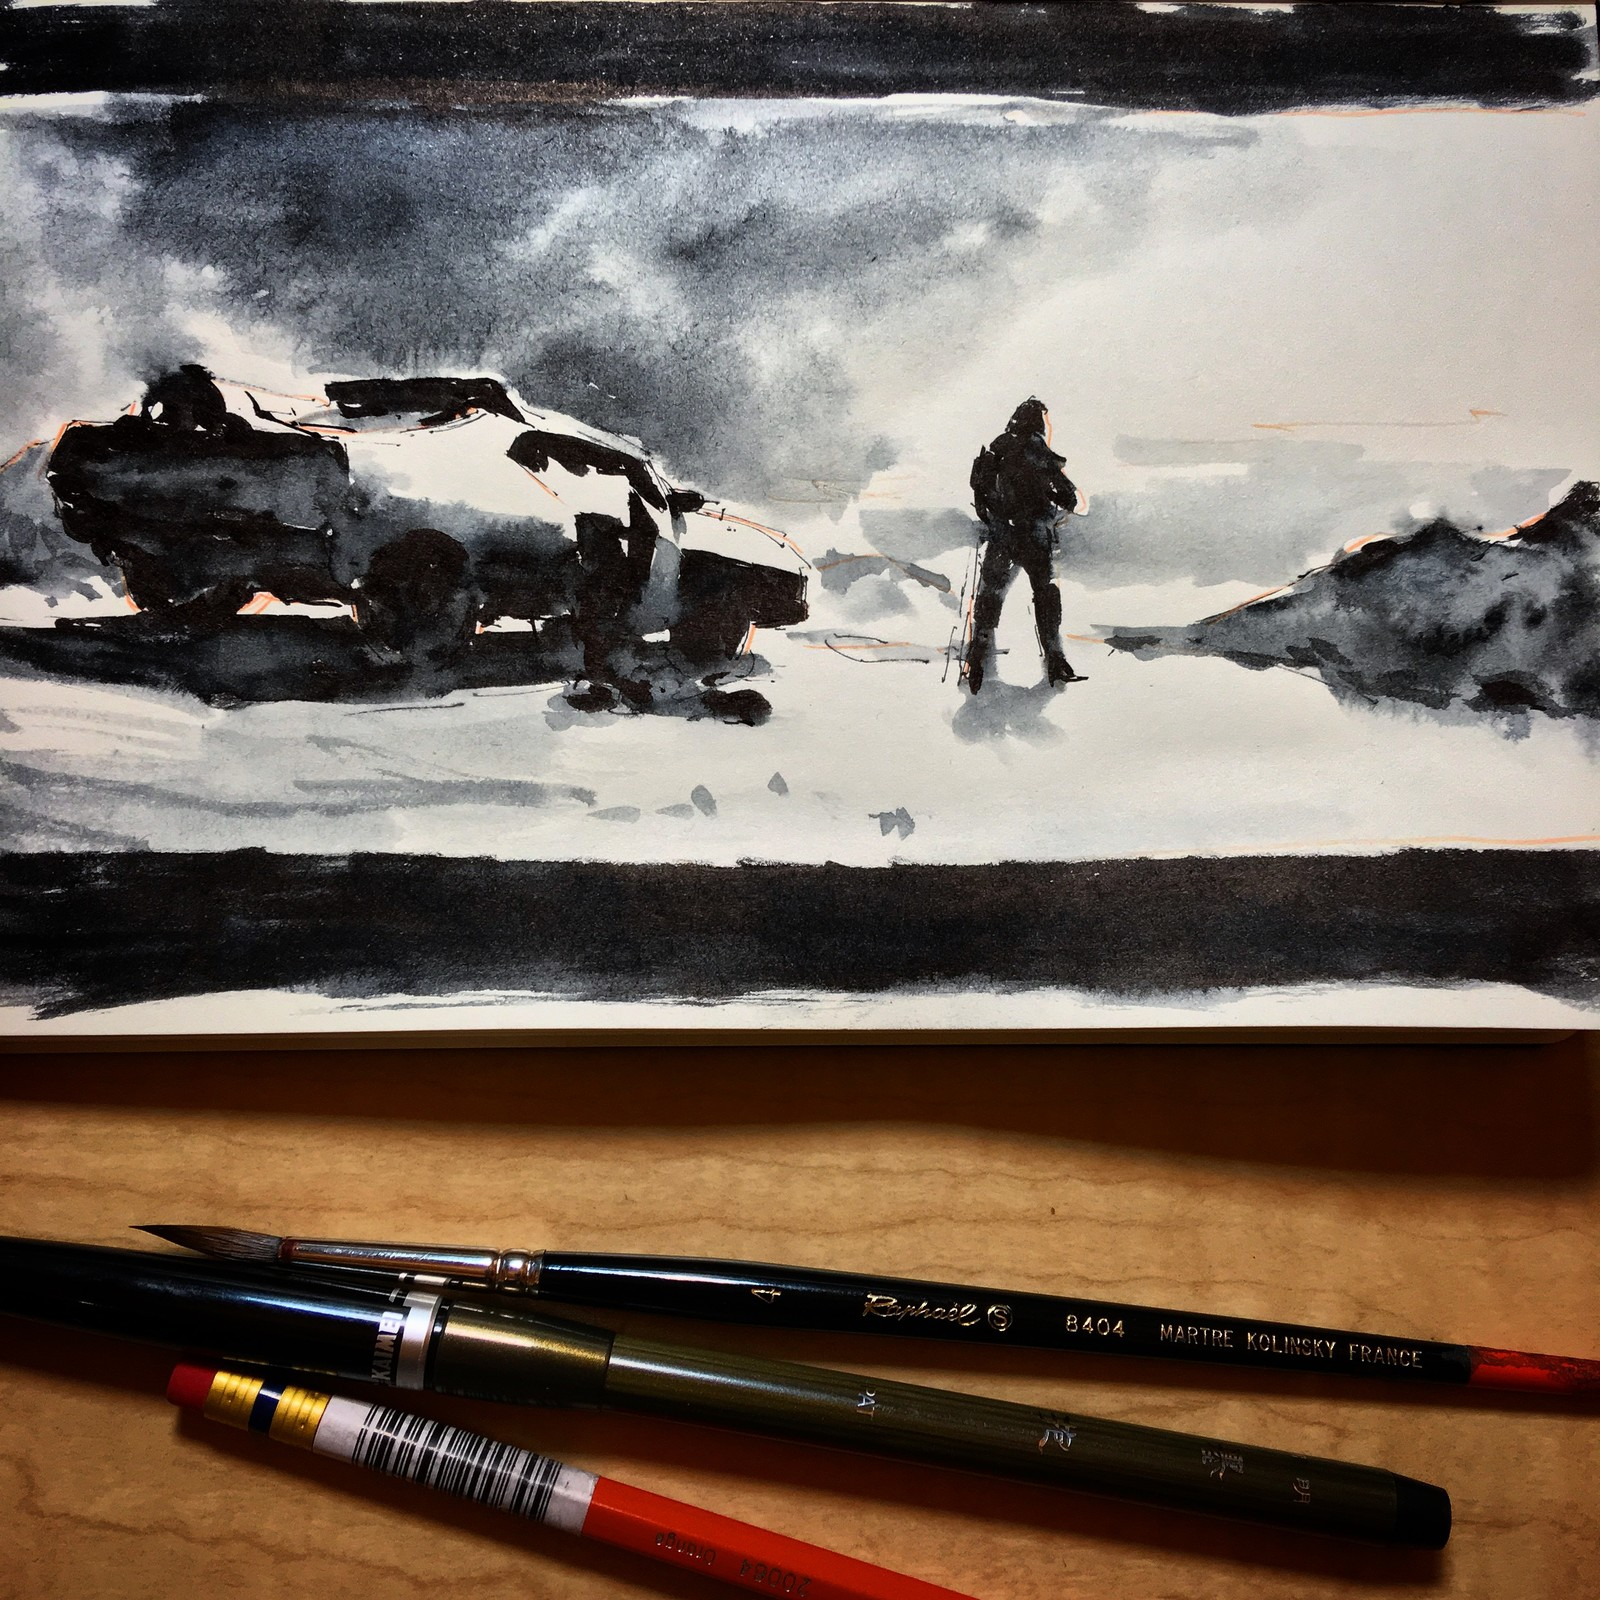 INKTOBER - MAD MAX: BLACK & CHROME studies